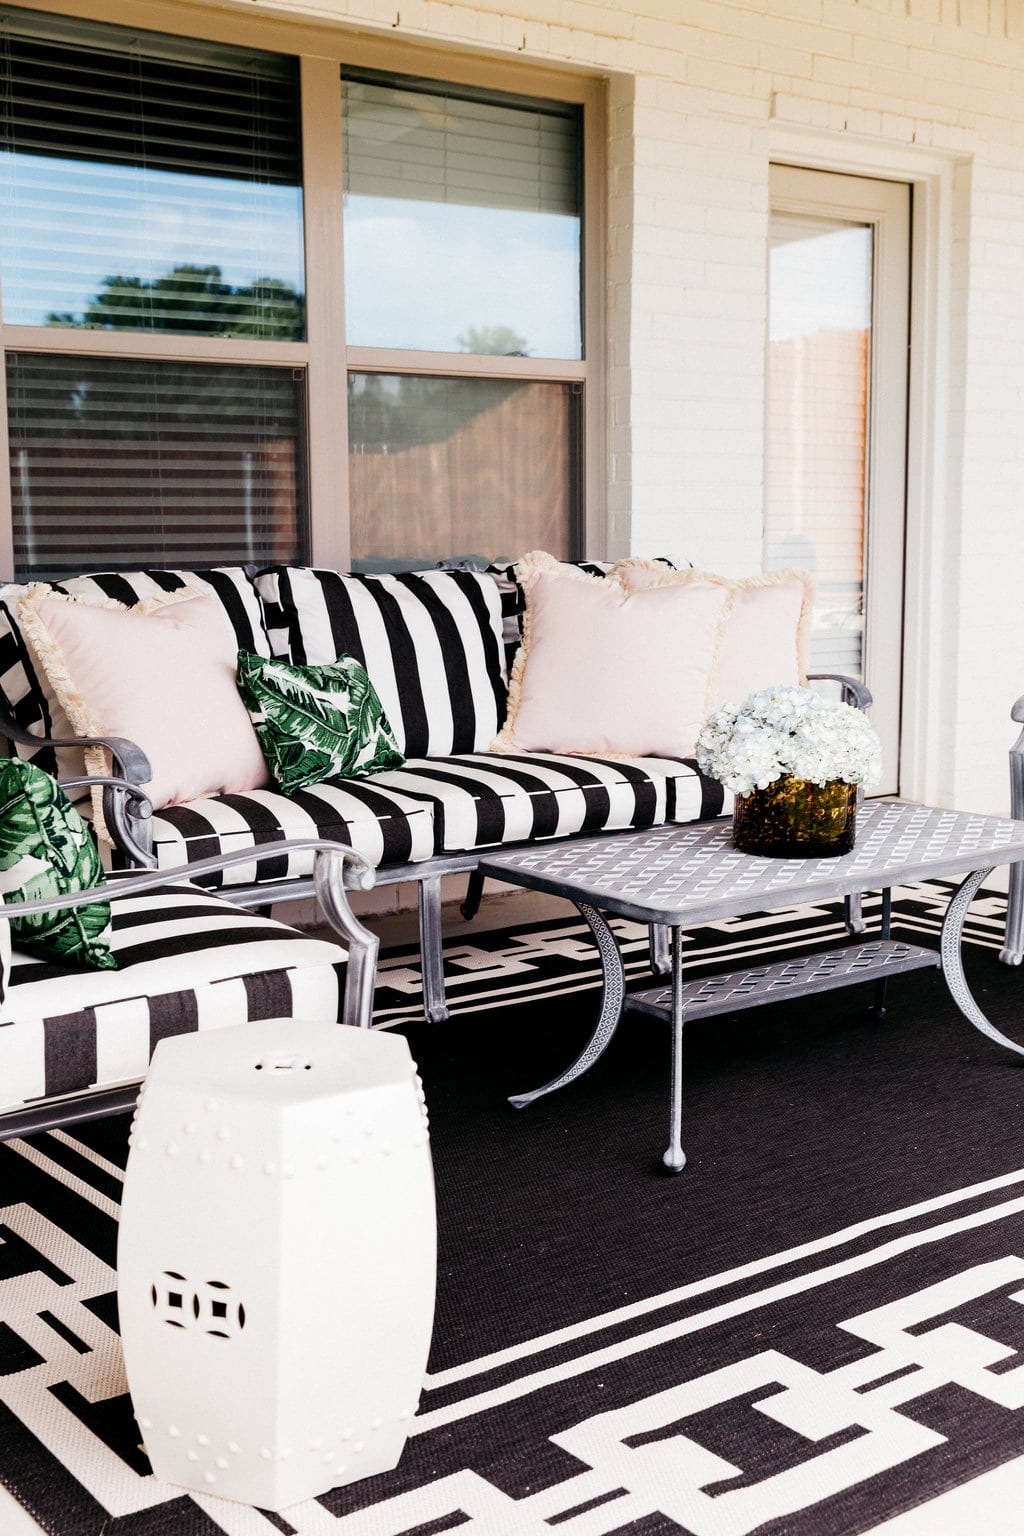 ballard designs dining chair cushions outdoor garden covers our patio before and after with chronicles